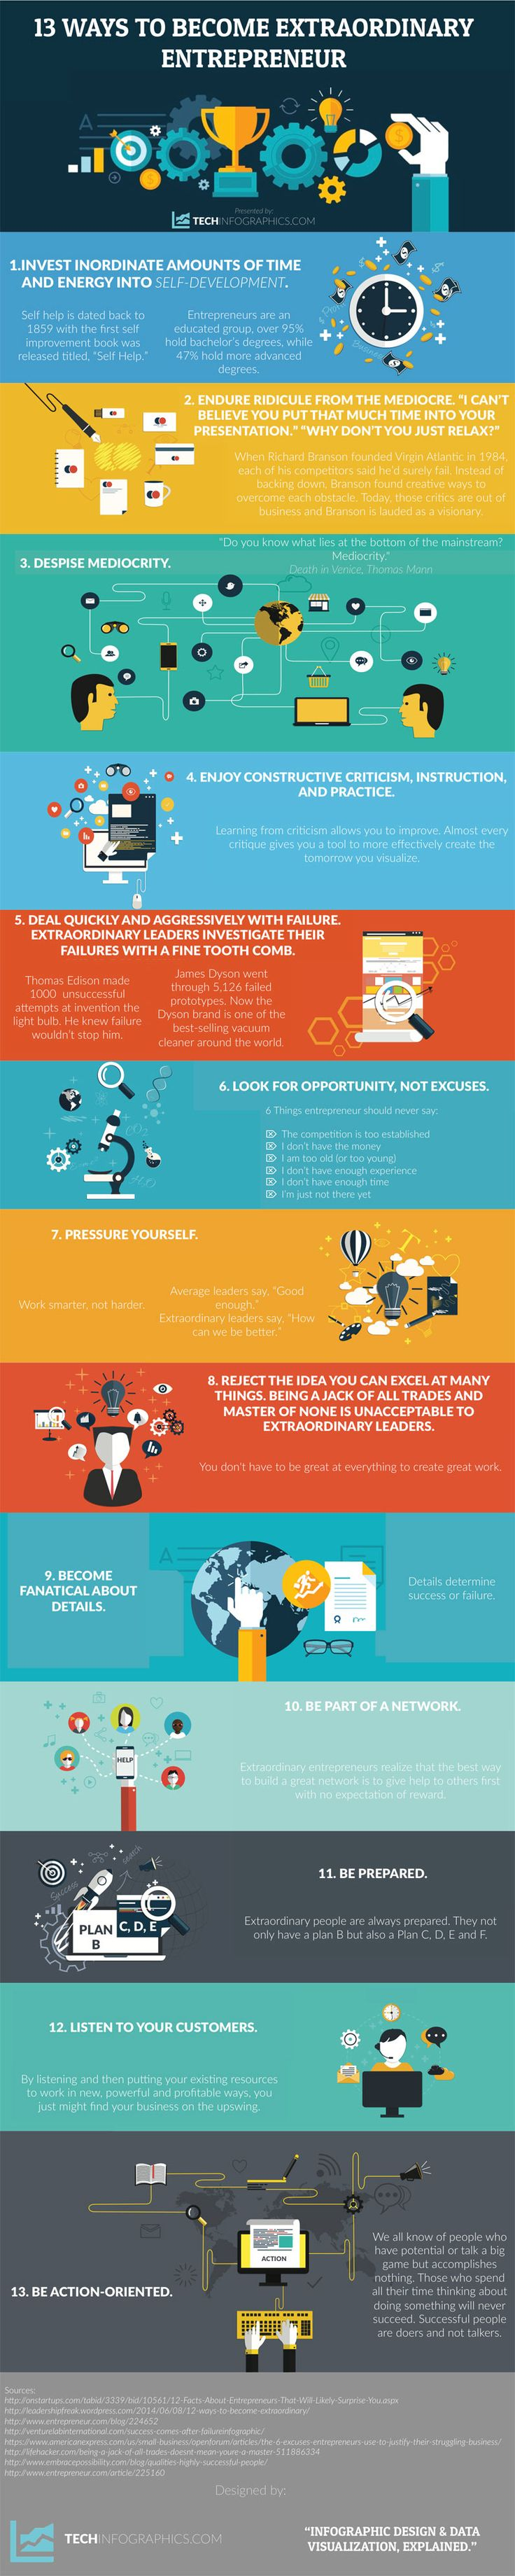 13 tips for Extraordinary entrepreneur #infographic